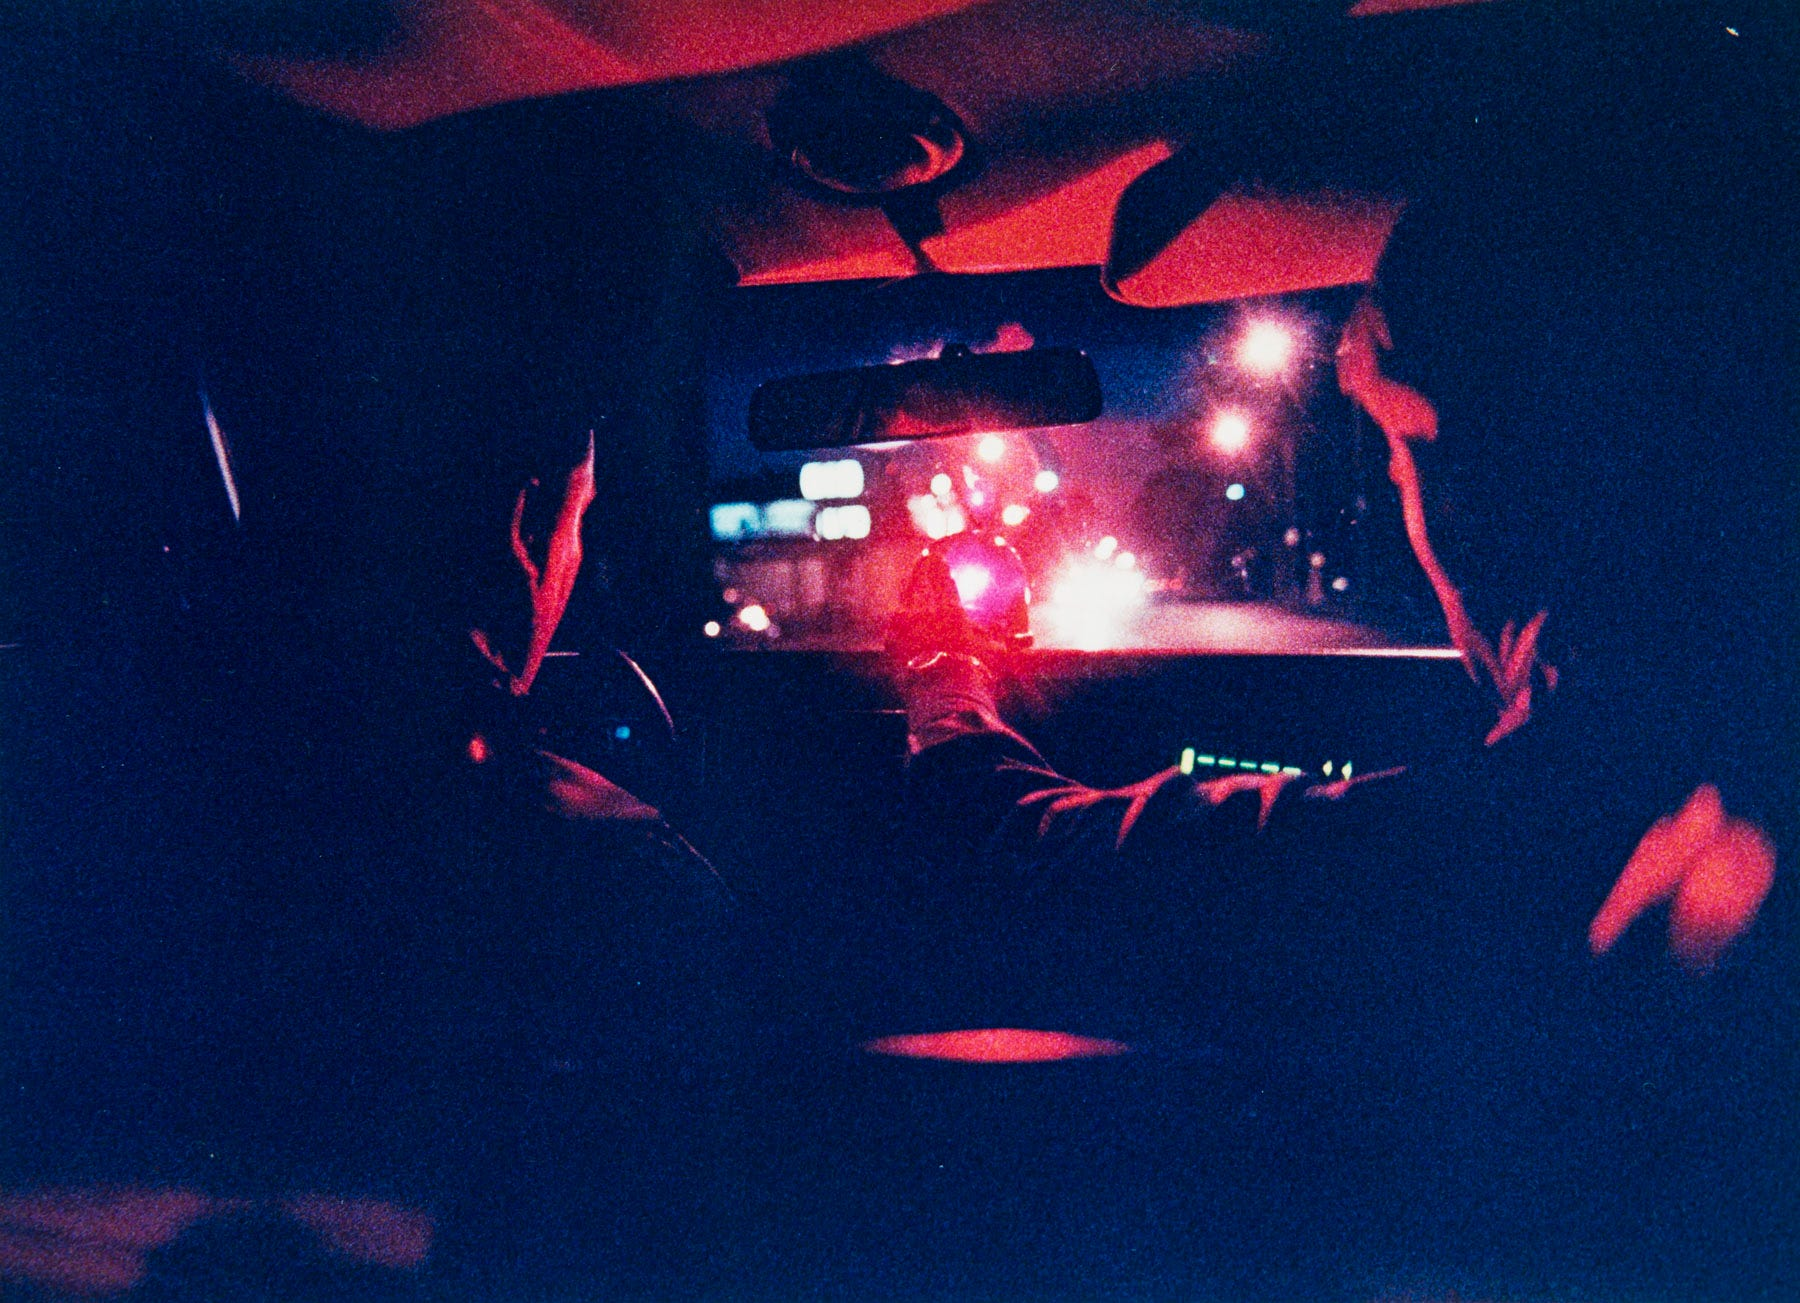 Newark police officers set up the emergency lights in their vehicle in this 1990 file photo.